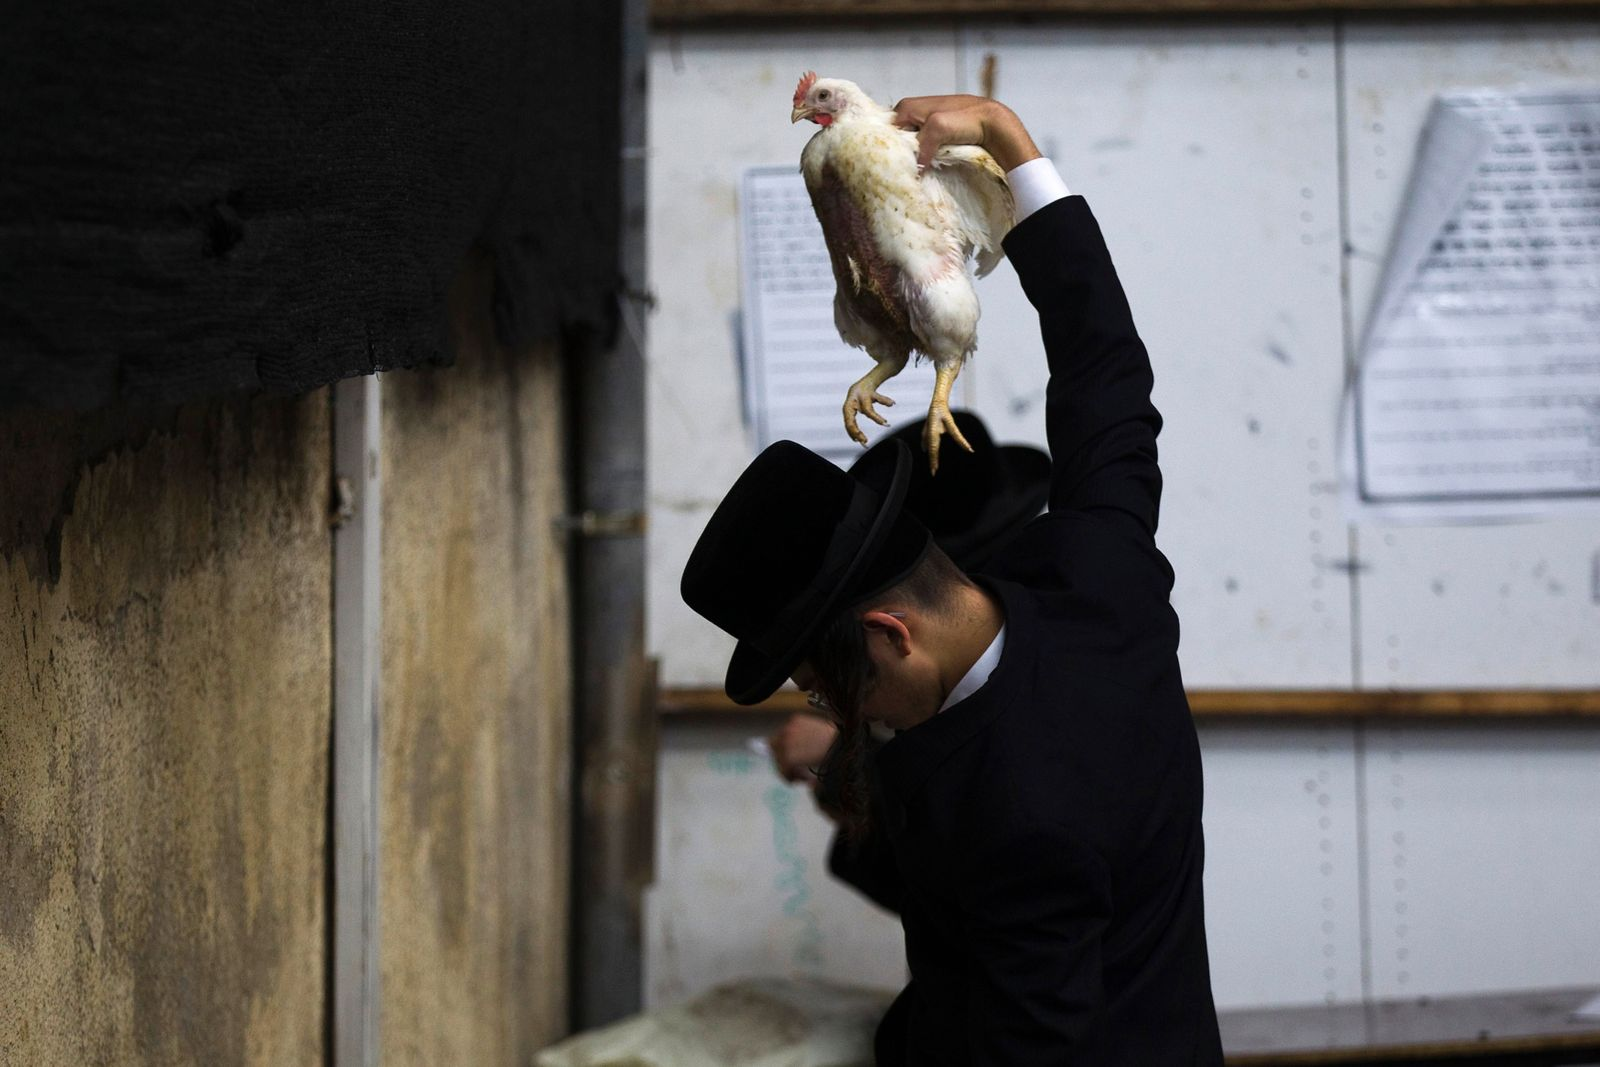 An ultra-Orthodox Jewish man holds a chicken over his head as he performs the Kaparot ritual in Jerusalem